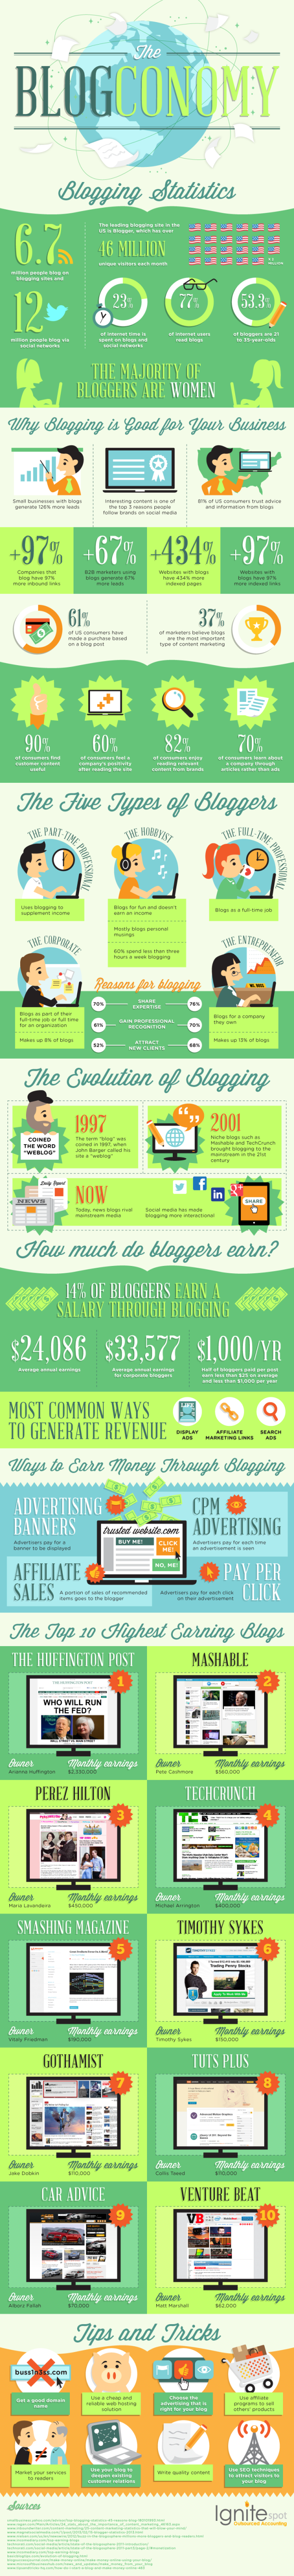 Highest-Earning-Blog-Infographic